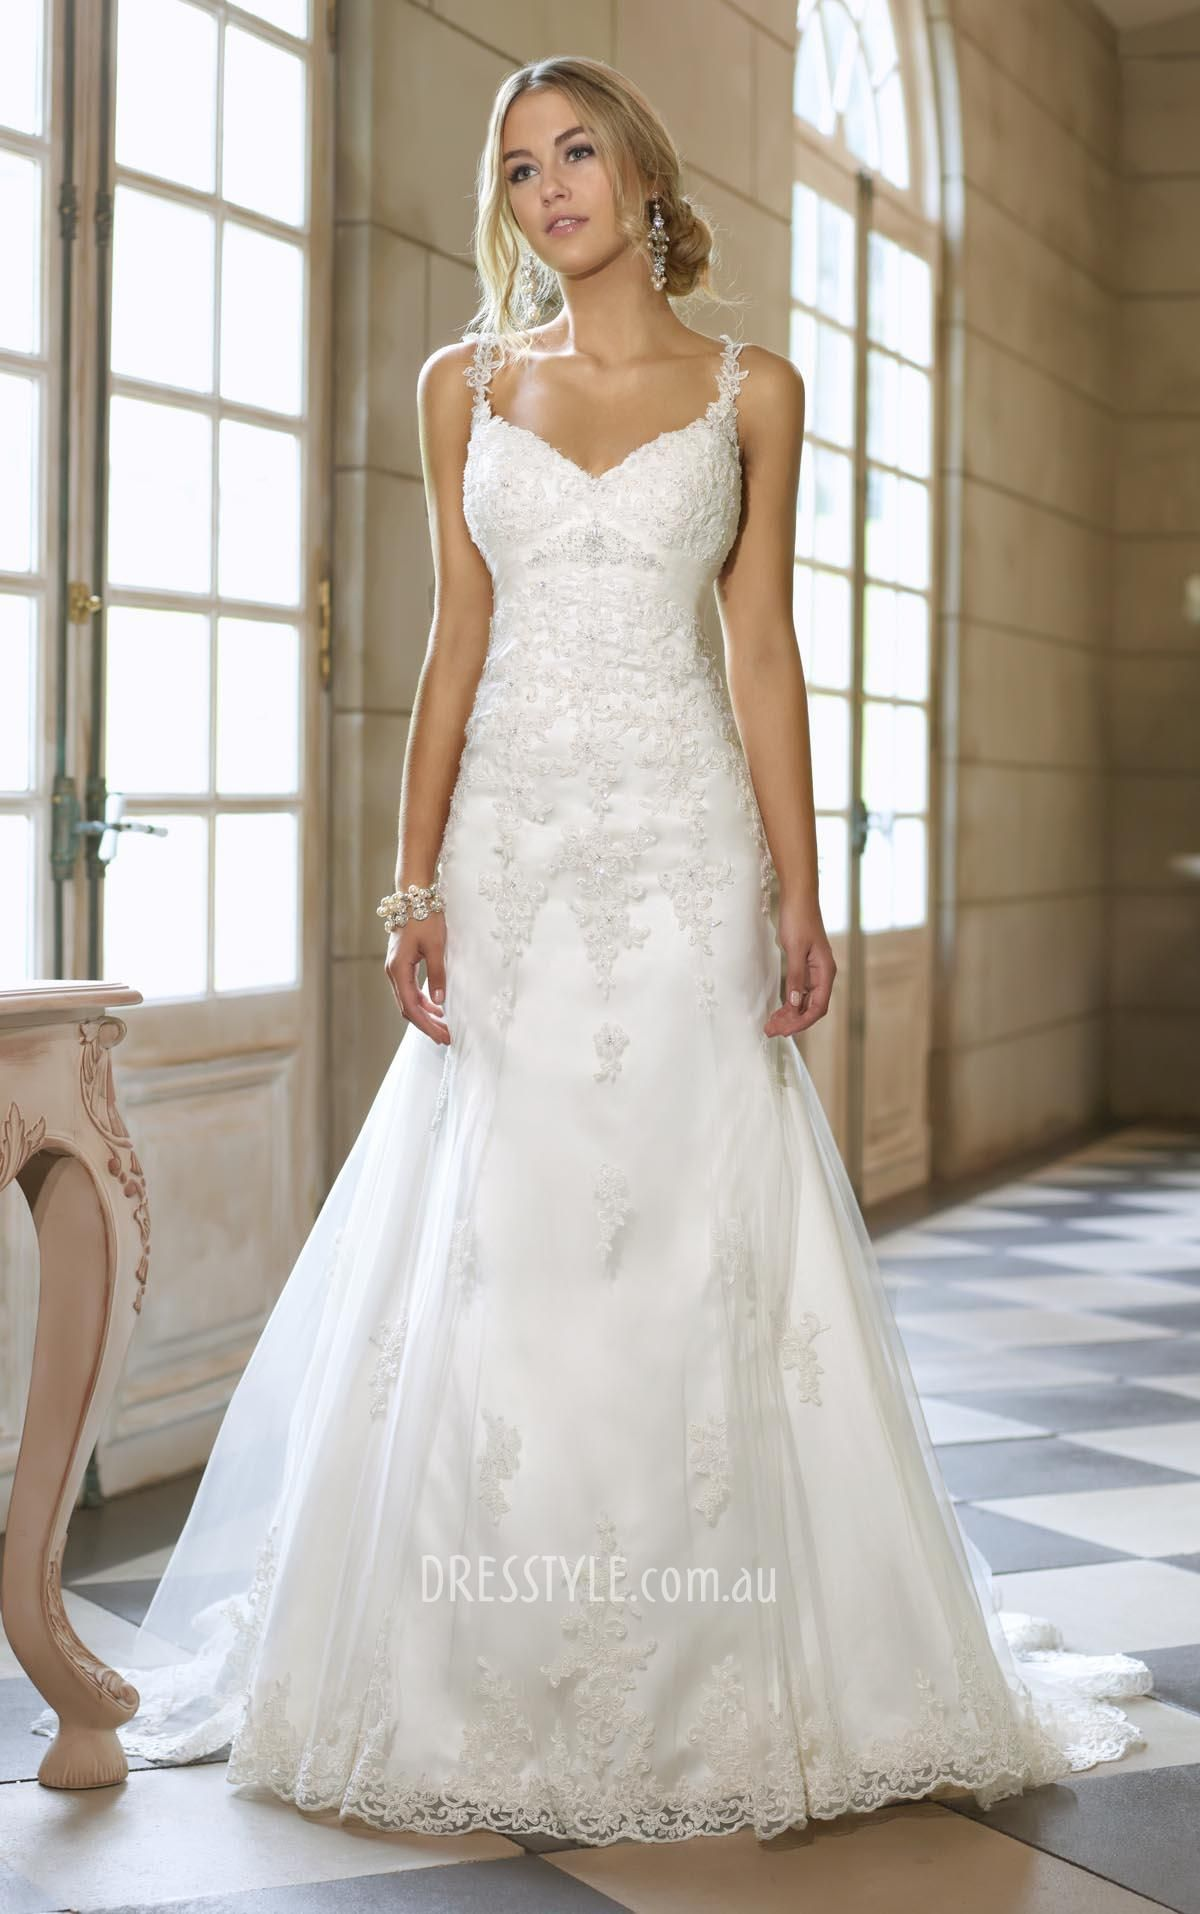 Wedding dress with straps  Lace overlay Aline beaded straps Vback wedding dress  Fashion